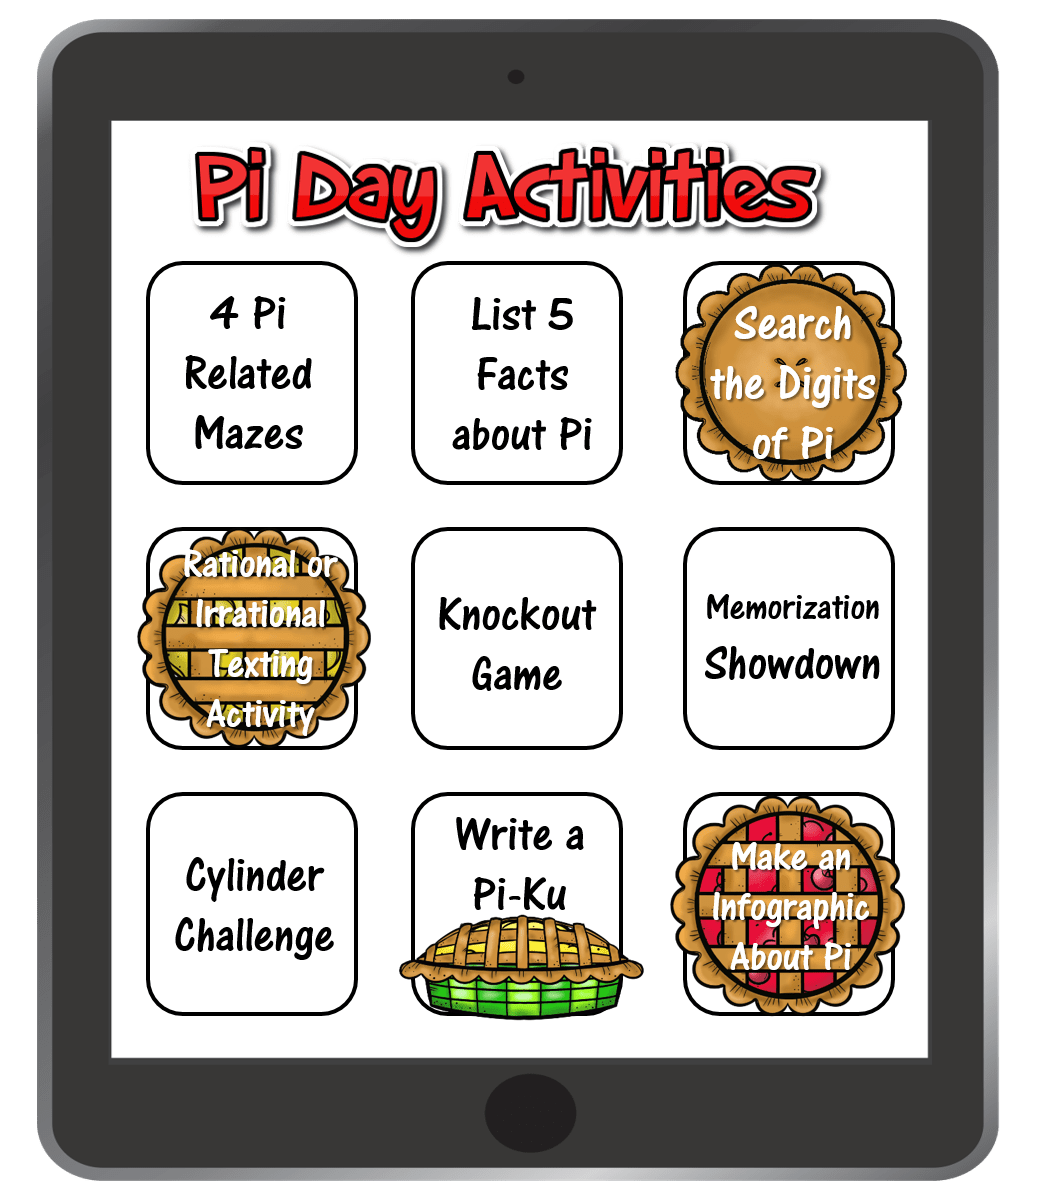 9 Easy Activities To Celebrate Pi Day Easy Activities Pi Day How To Memorize Things [ 1200 x 1042 Pixel ]